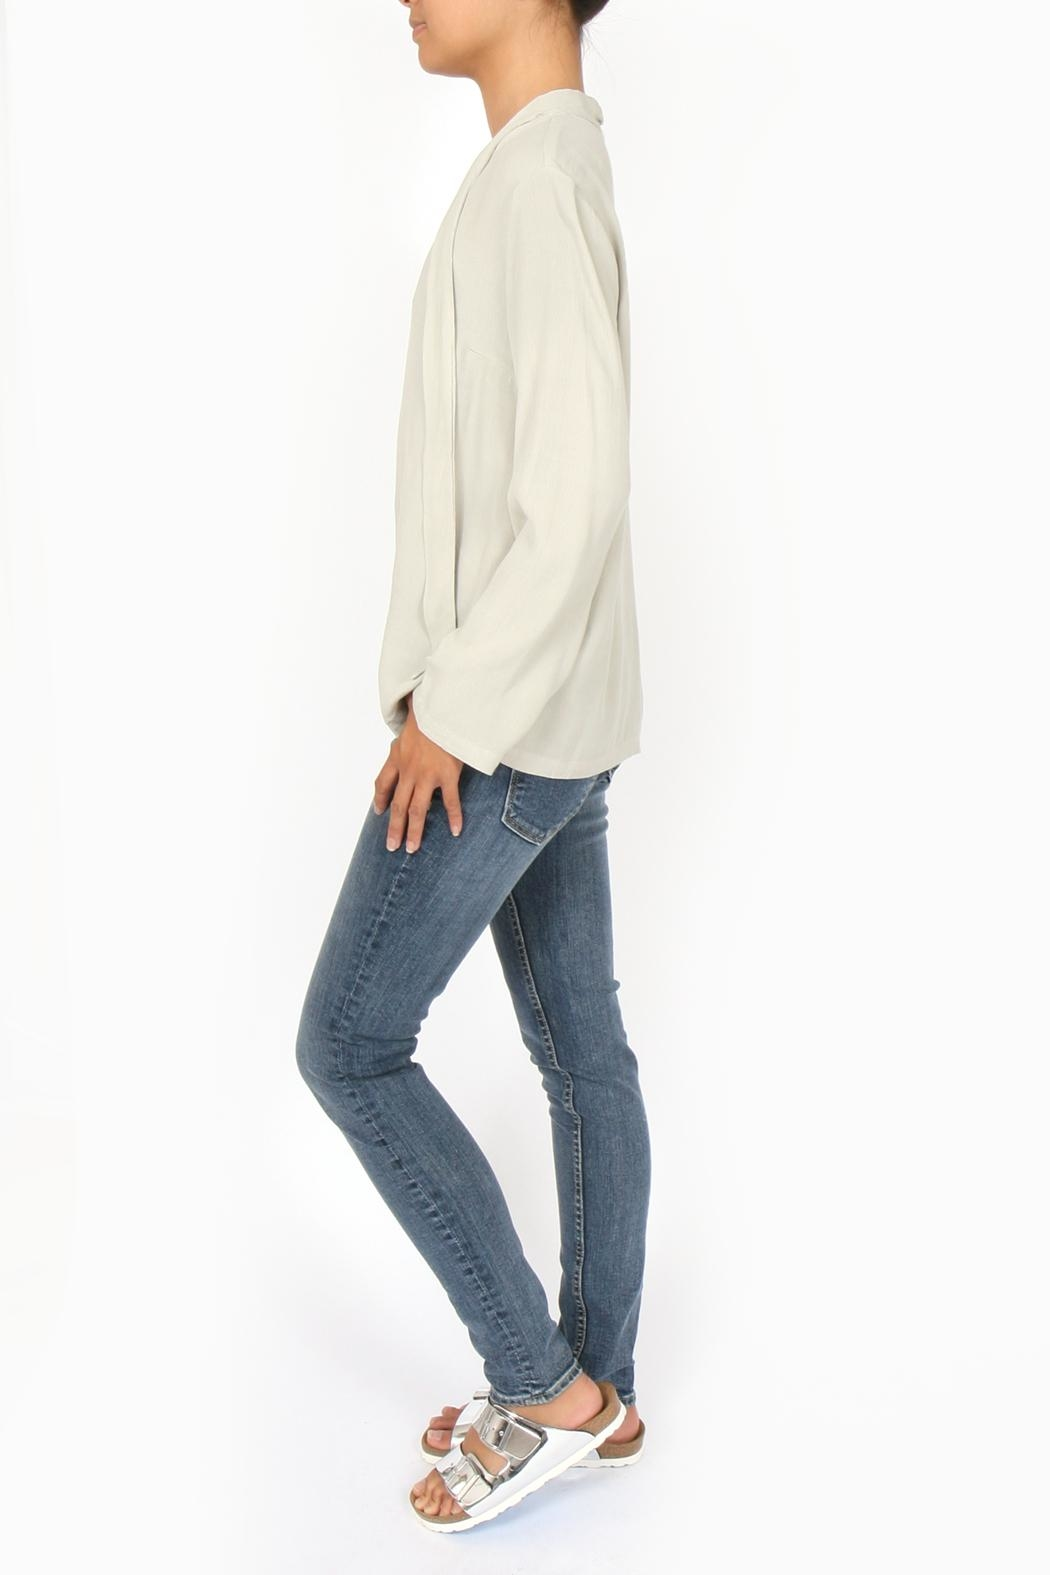 Sam & Lavi Rory Tie Blouse - Side Cropped Image